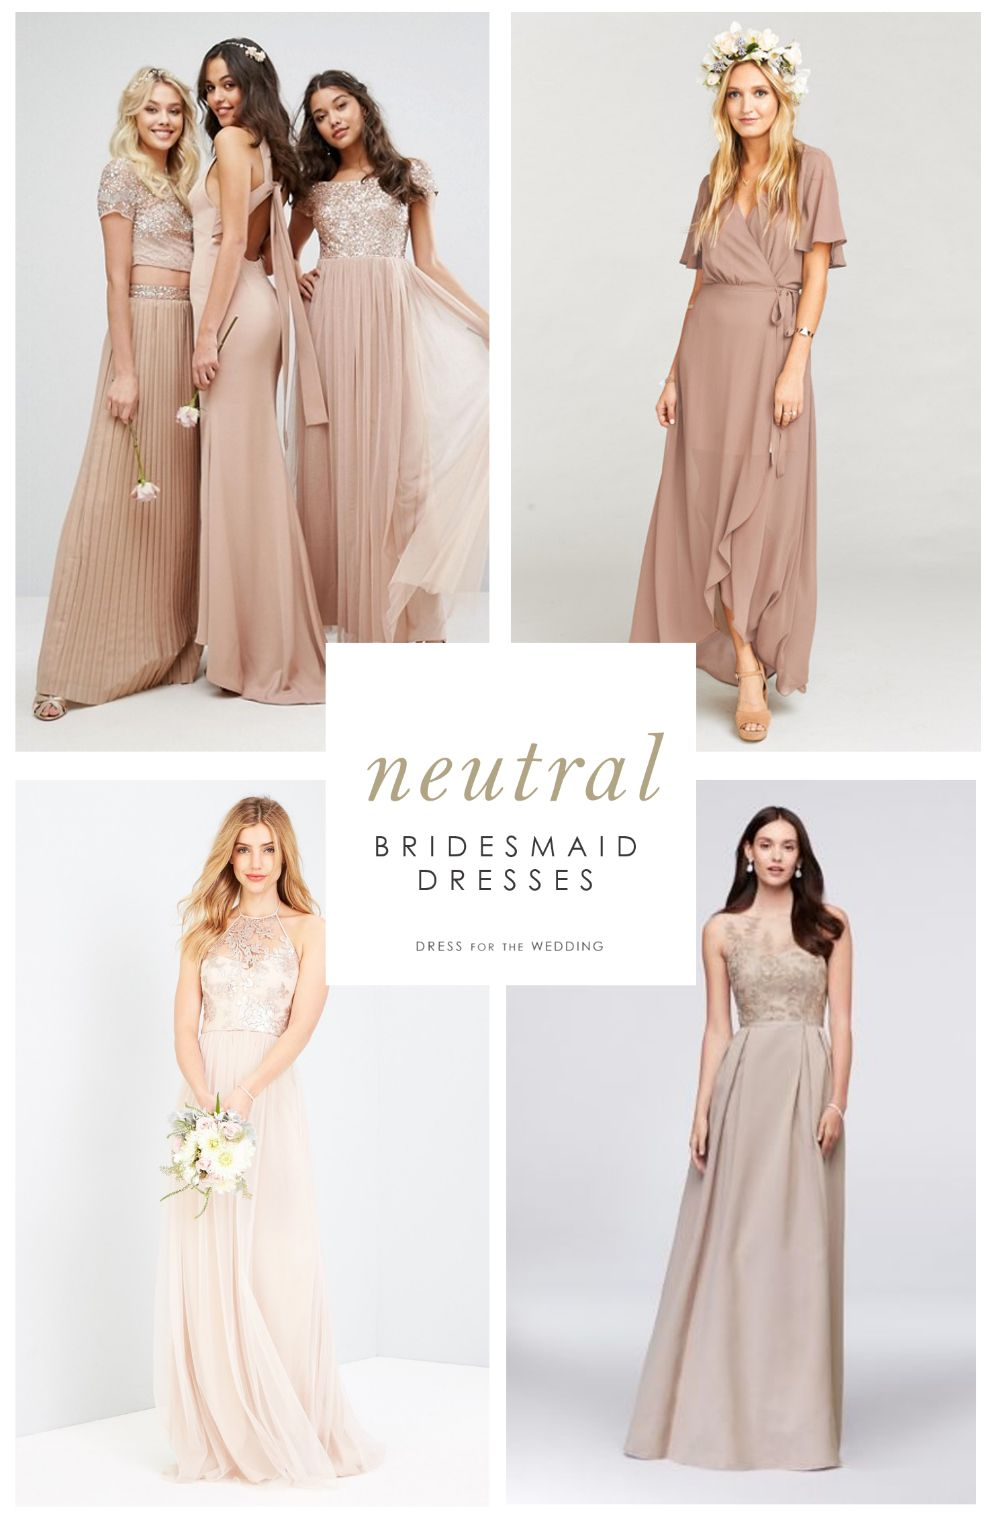 Neutral Bridesmaid Dresses Dress For The Wedding Neutral Bridesmaid Dresses Taupe Bridesmaid Dresses Bridesmaid Dresses